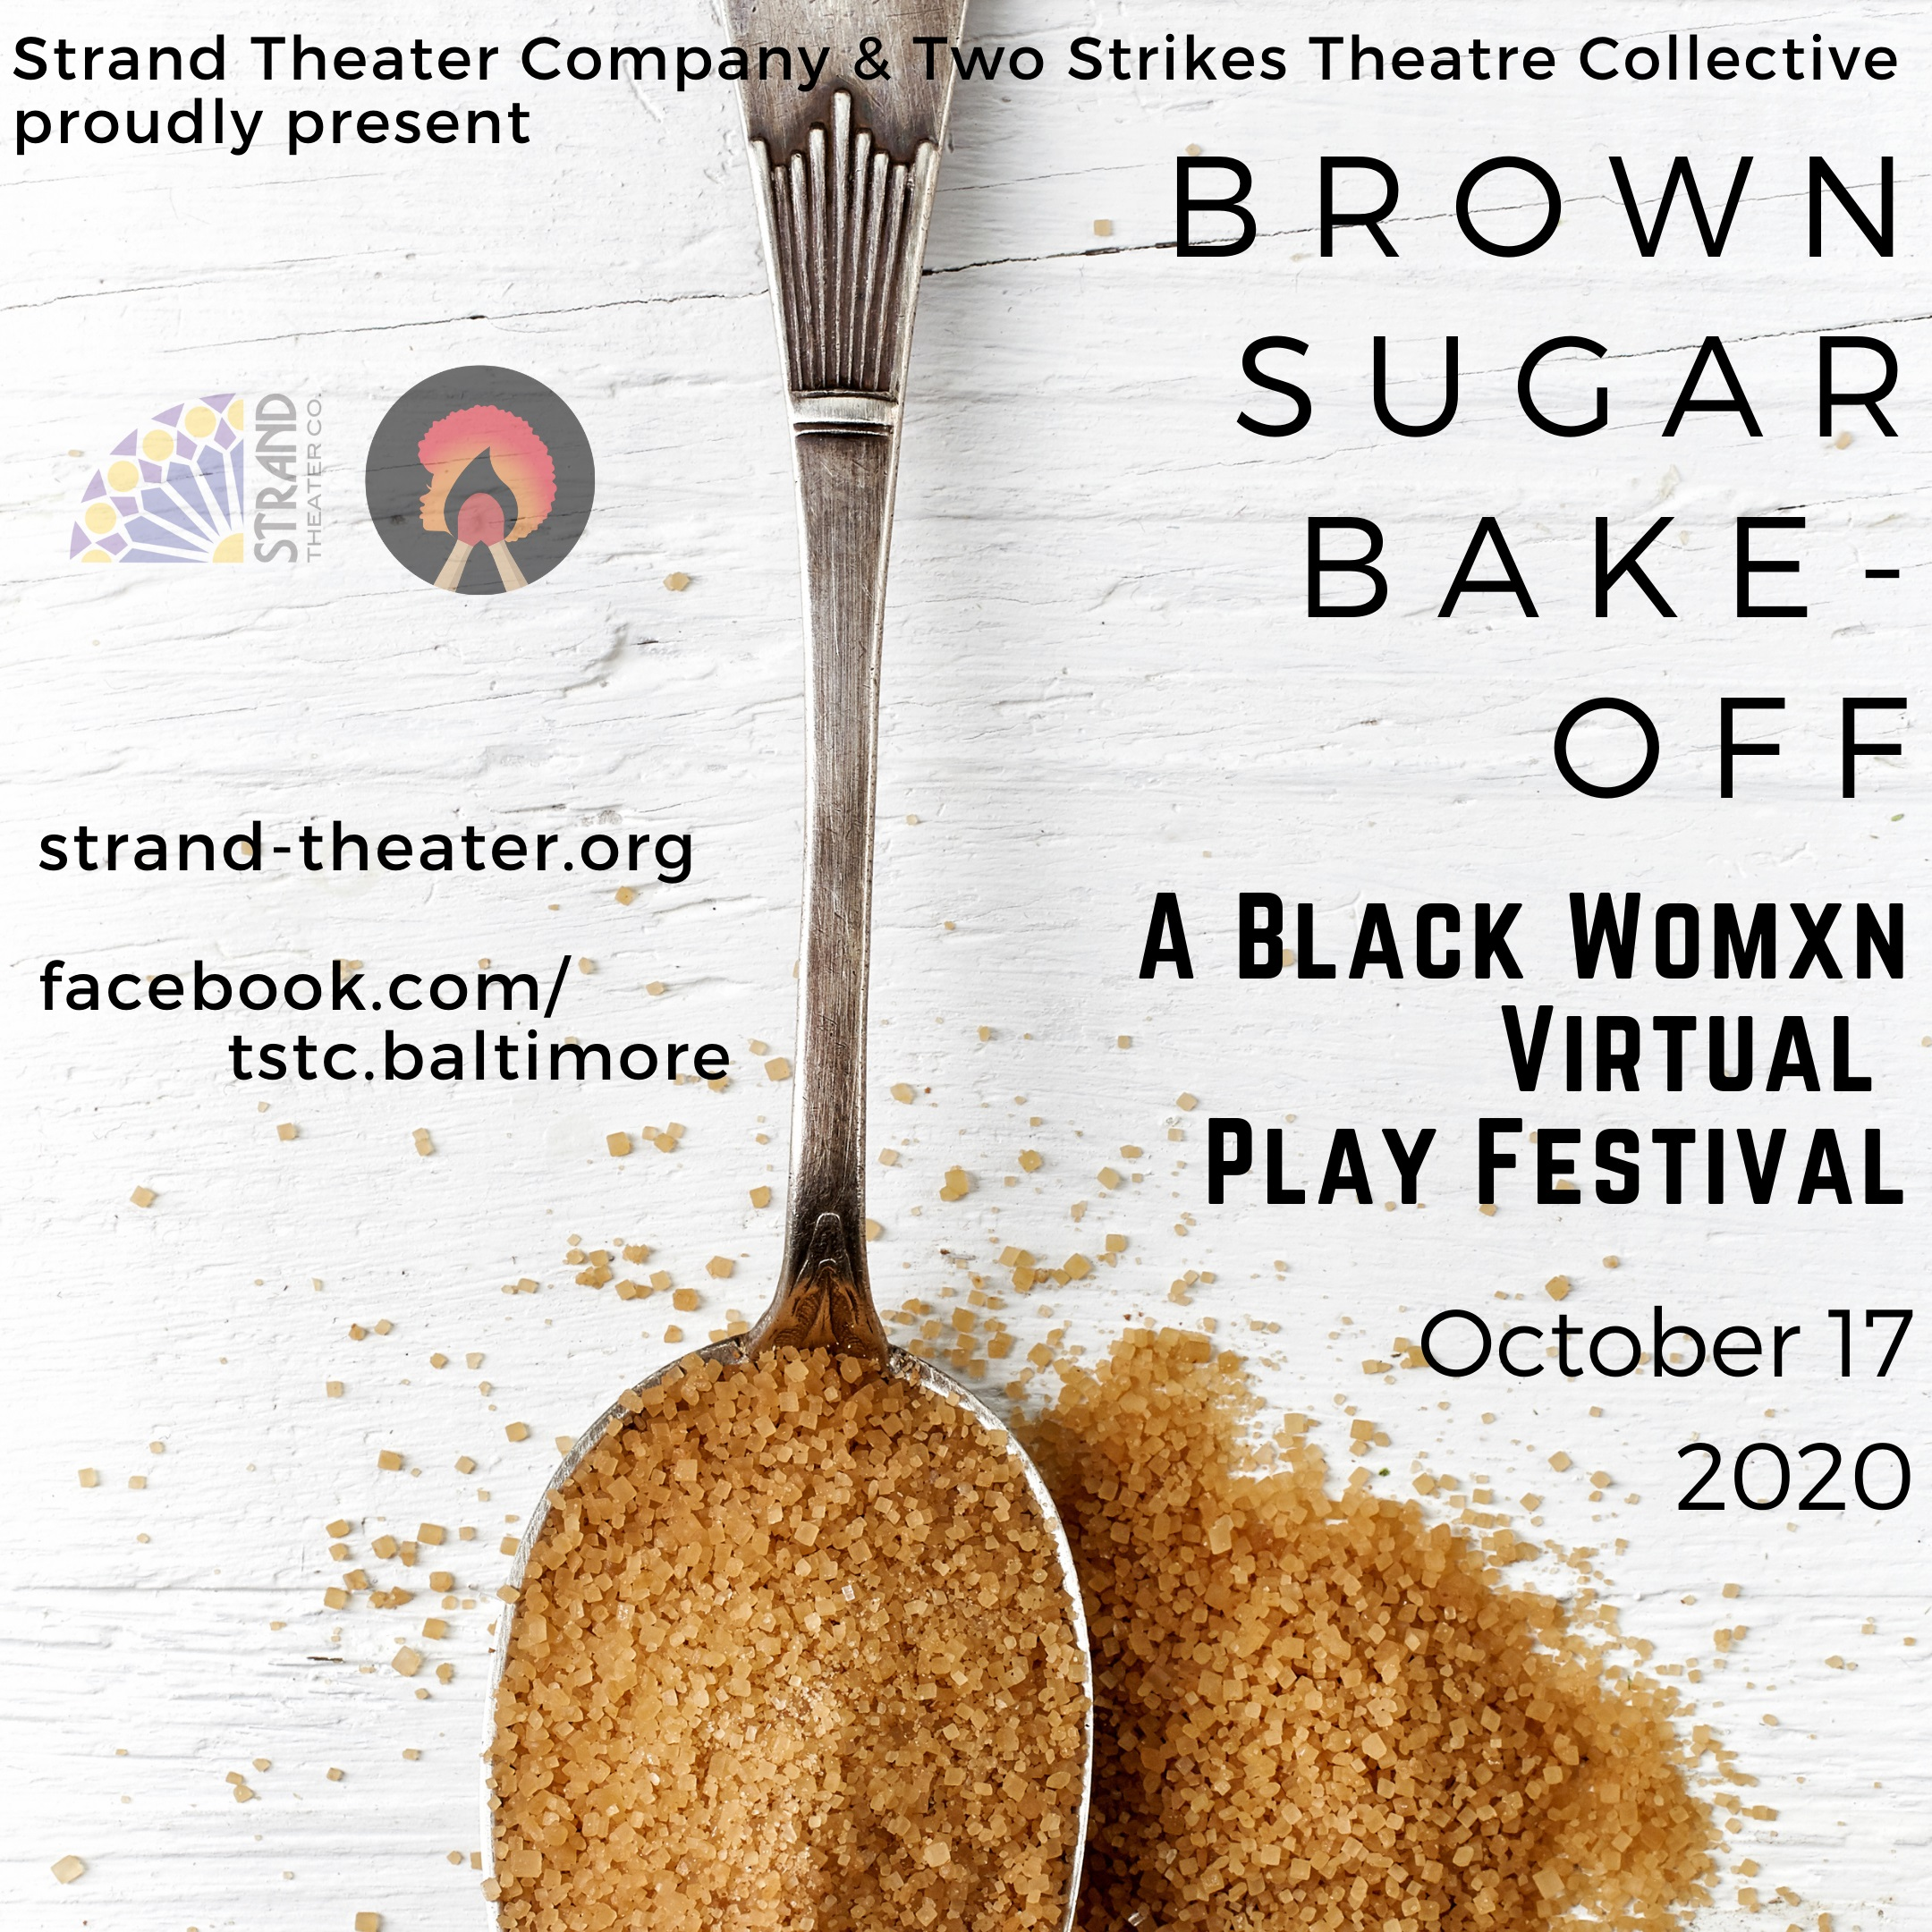 Strand Theater & Two Strikes Announce BROWN SUGAR BAKE-OFF: A BLACK WOMXN VIRTUAL PLAY FESTIVAL